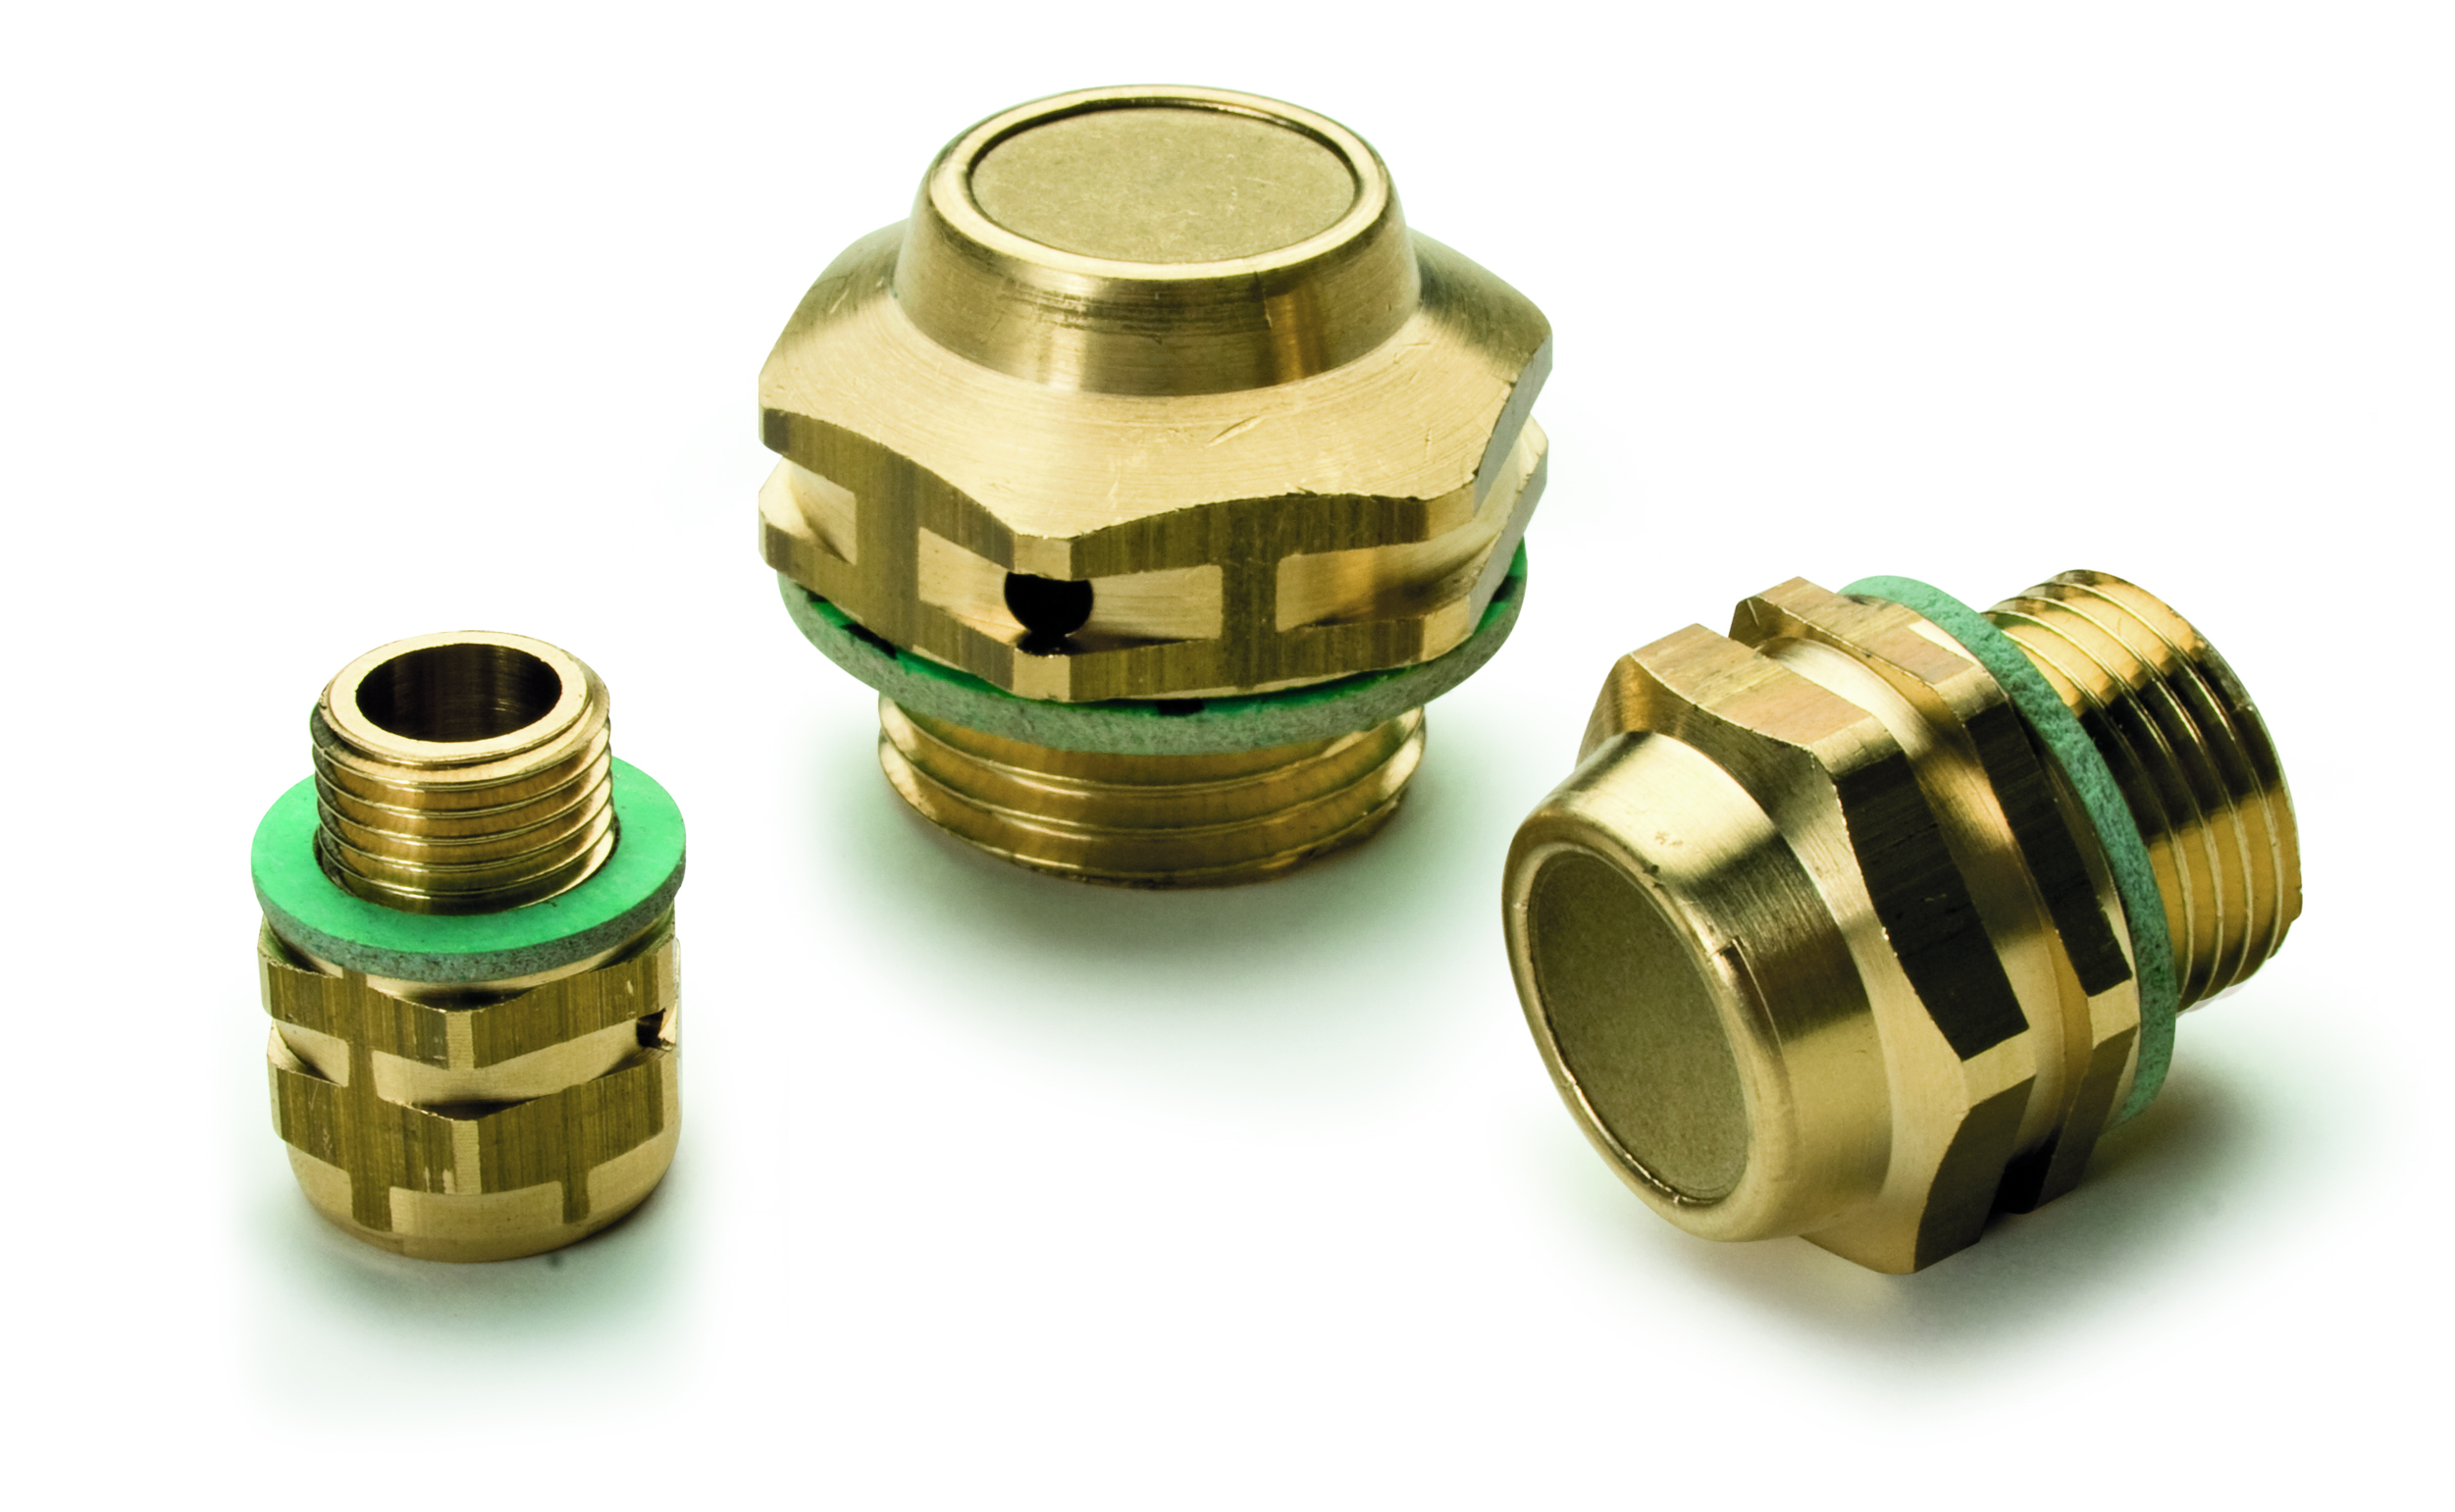 Hydraulic Jack Design further Gear Box Breather Vents Plugs together with Deadliest Animals additionally Mnb0002 likewise Sae J518 Code 61 And Code 62 4 Bolt Flanges. on oxygen tank seals